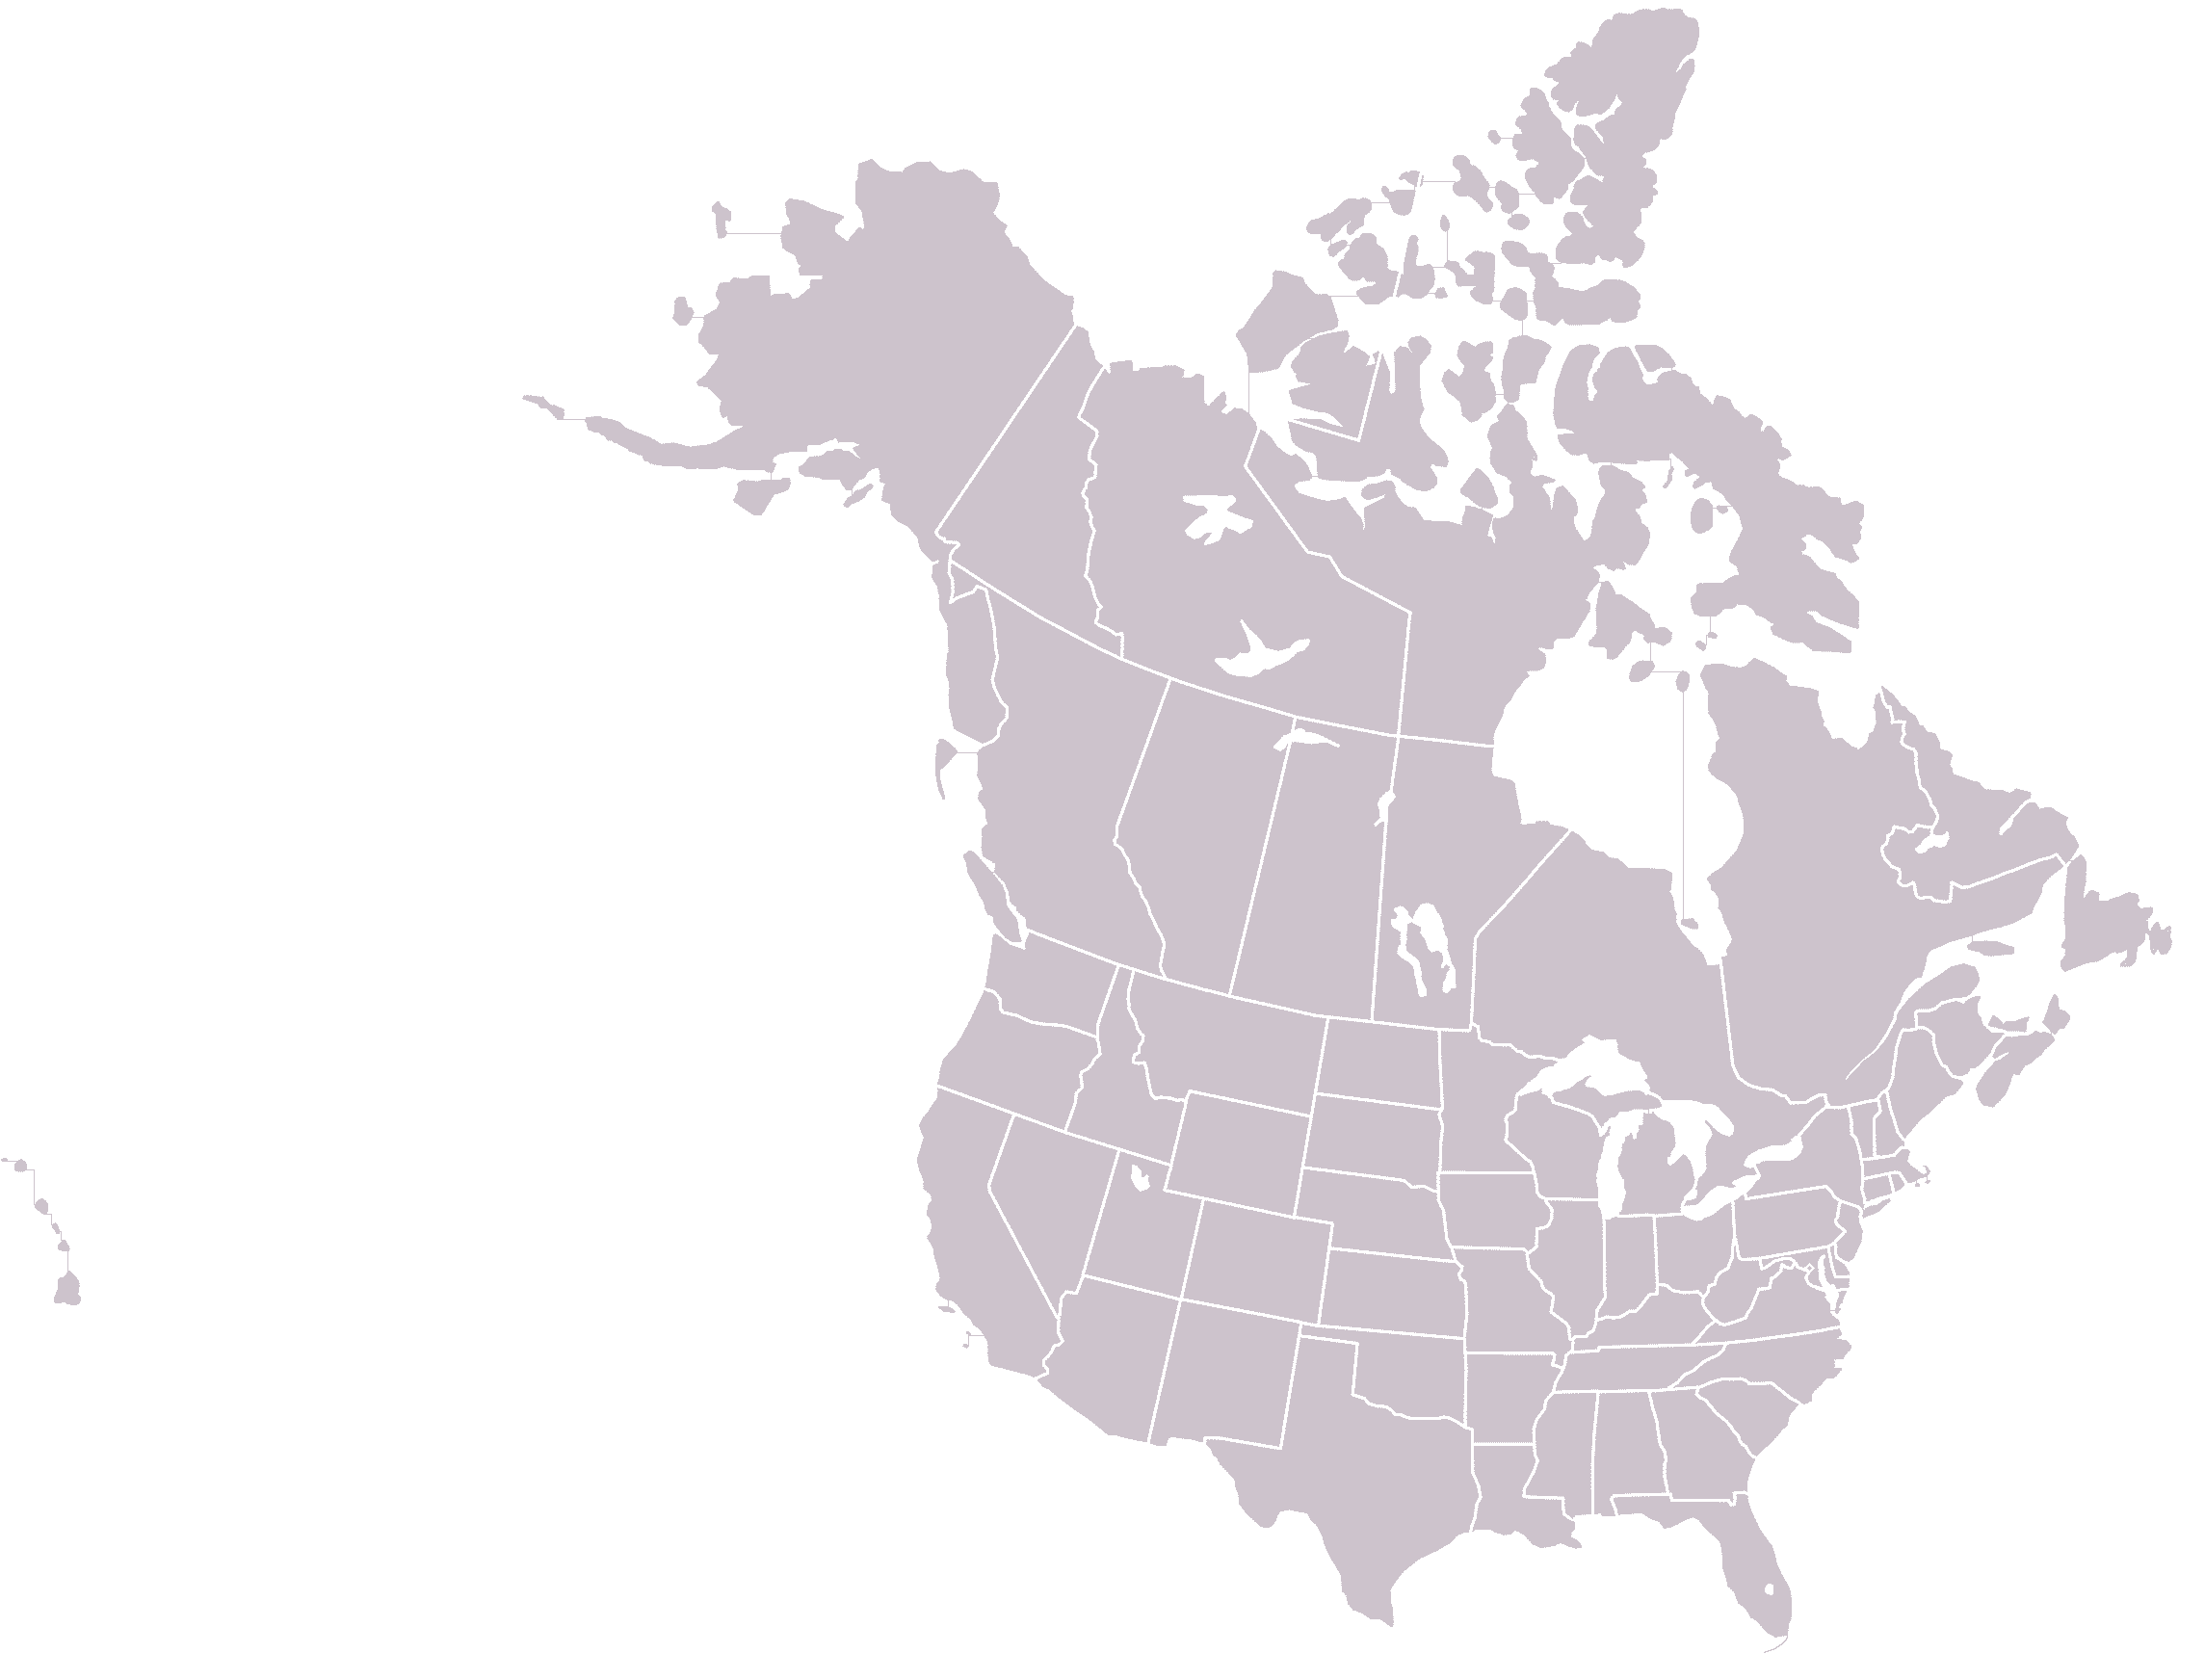 FileBlankMapUSAstatesCanadaprovincespng Wikimedia Commons - Blank us canada map